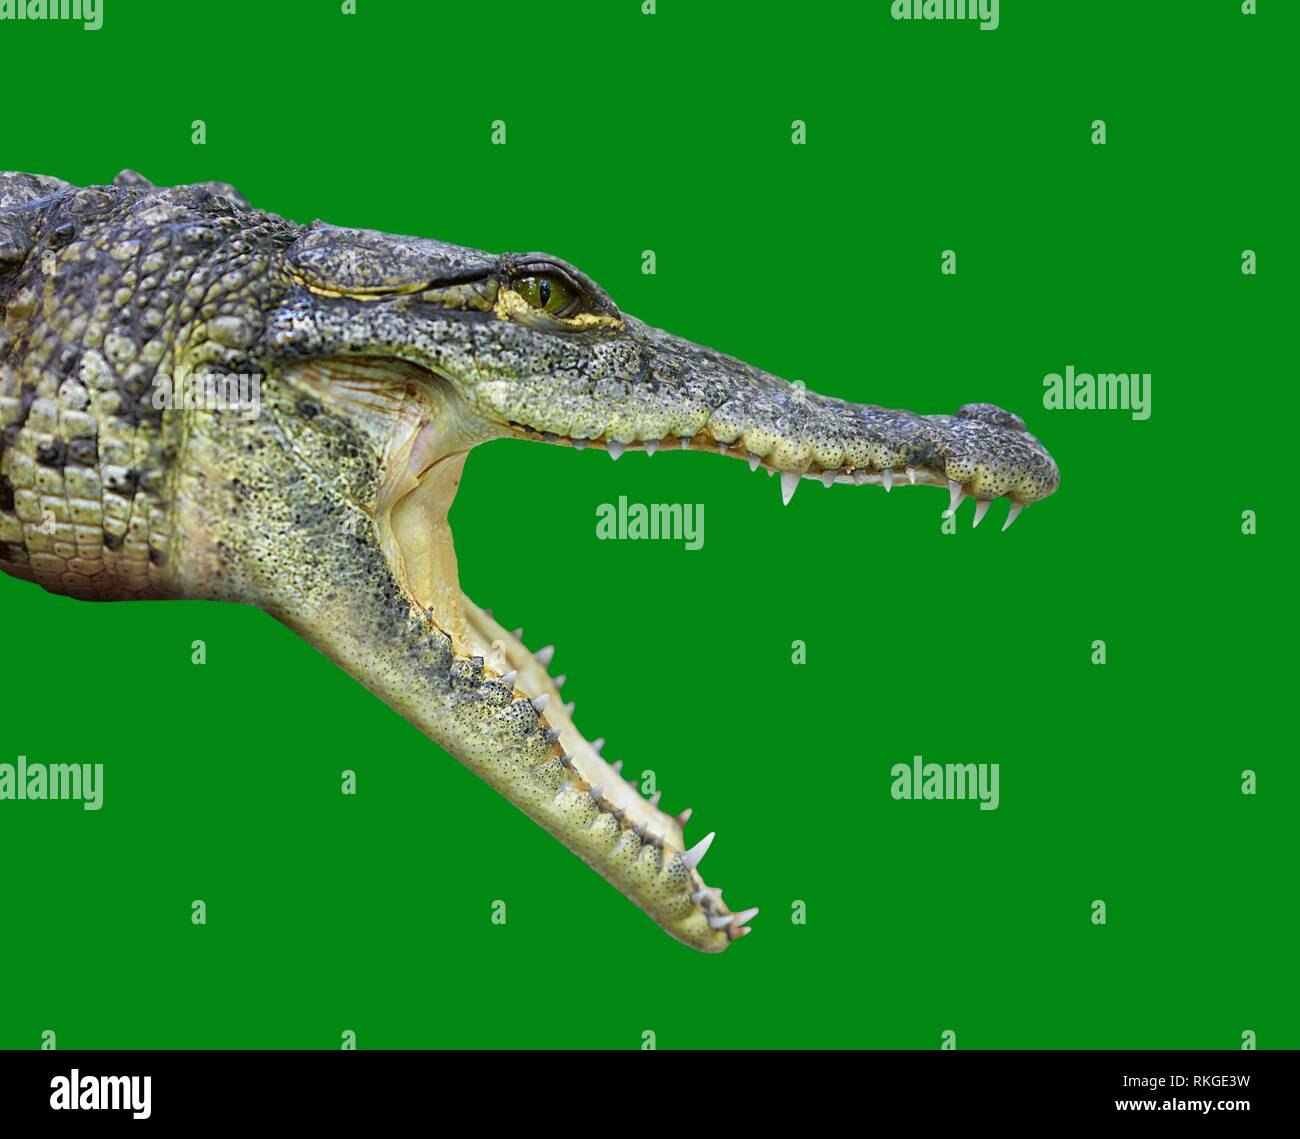 Crocodile young provile view from Mexico open mouth on green background. Stock Photo